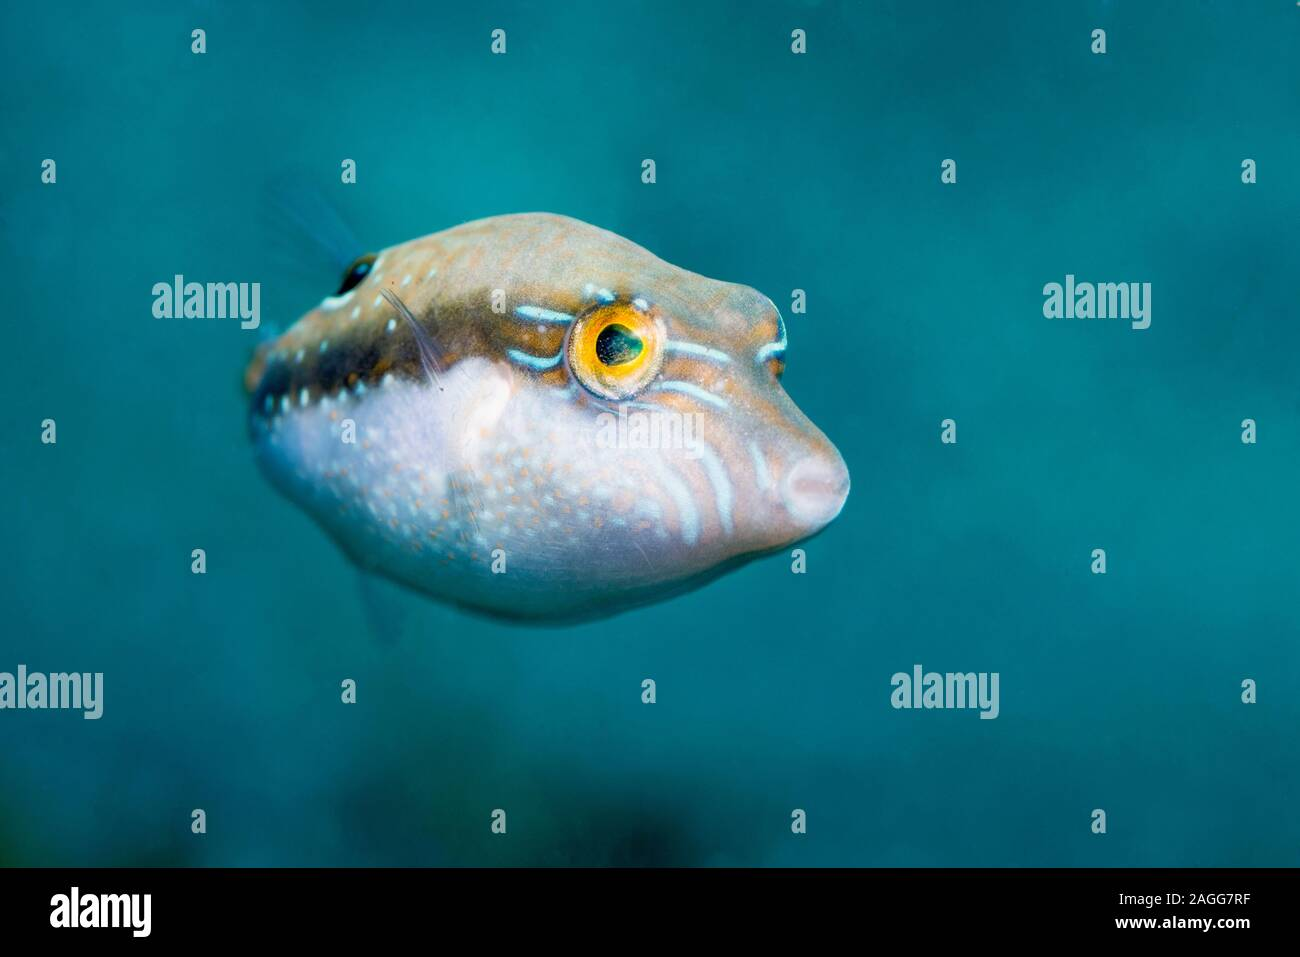 Bennets's toby, Bennet's sharpnose puffer [Canthigaster bennetti].  North Sulawesi, Indonesia. Stock Photo